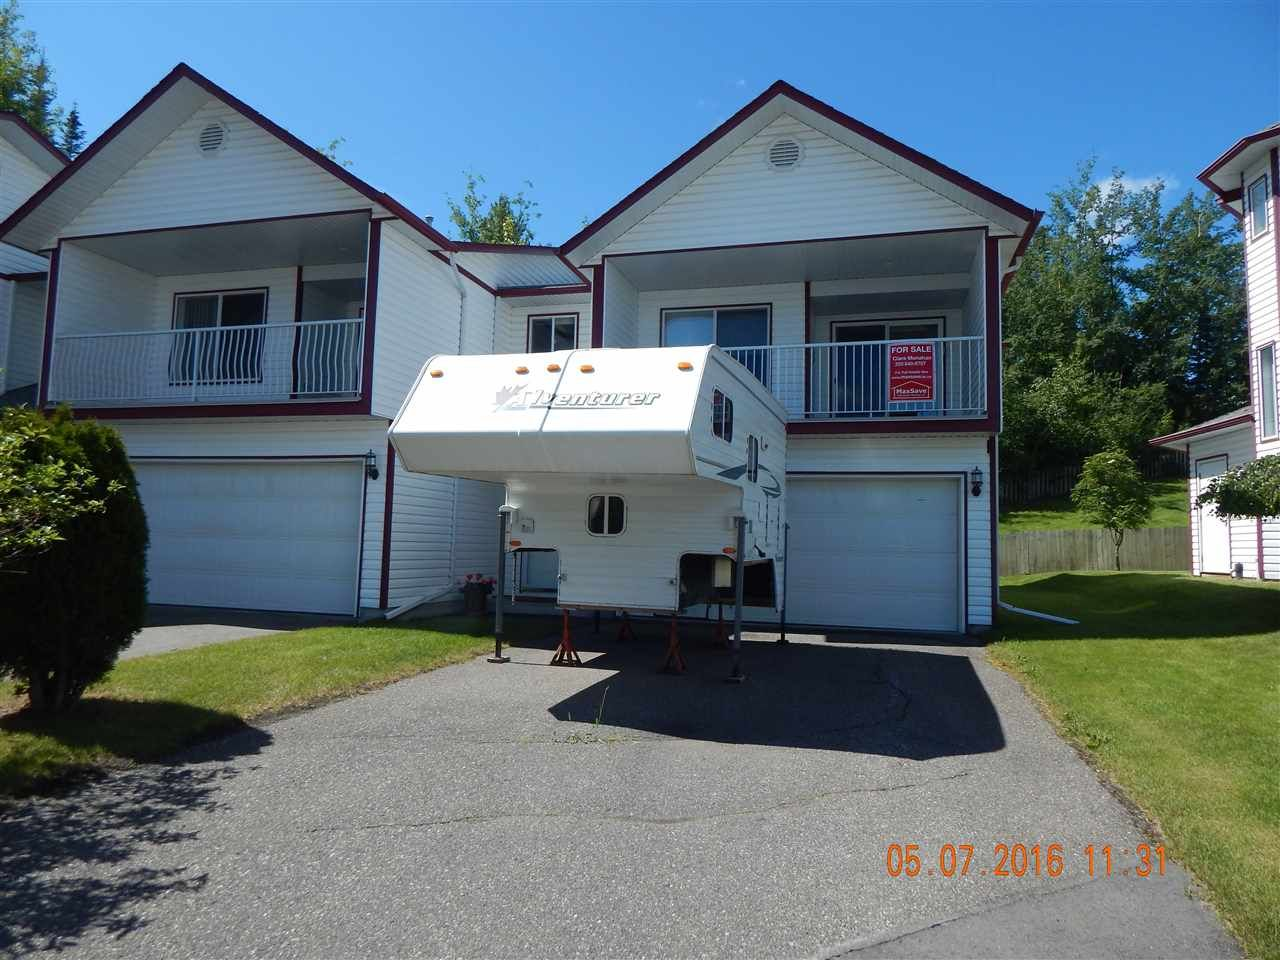 """Main Photo: 315 3015 ST ANNE Crescent in Prince George: St. Lawrence Heights Townhouse for sale in """"SOUTHRIDGE-ST.LAWRENCE"""" (PG City South (Zone 74))  : MLS®# R2076228"""